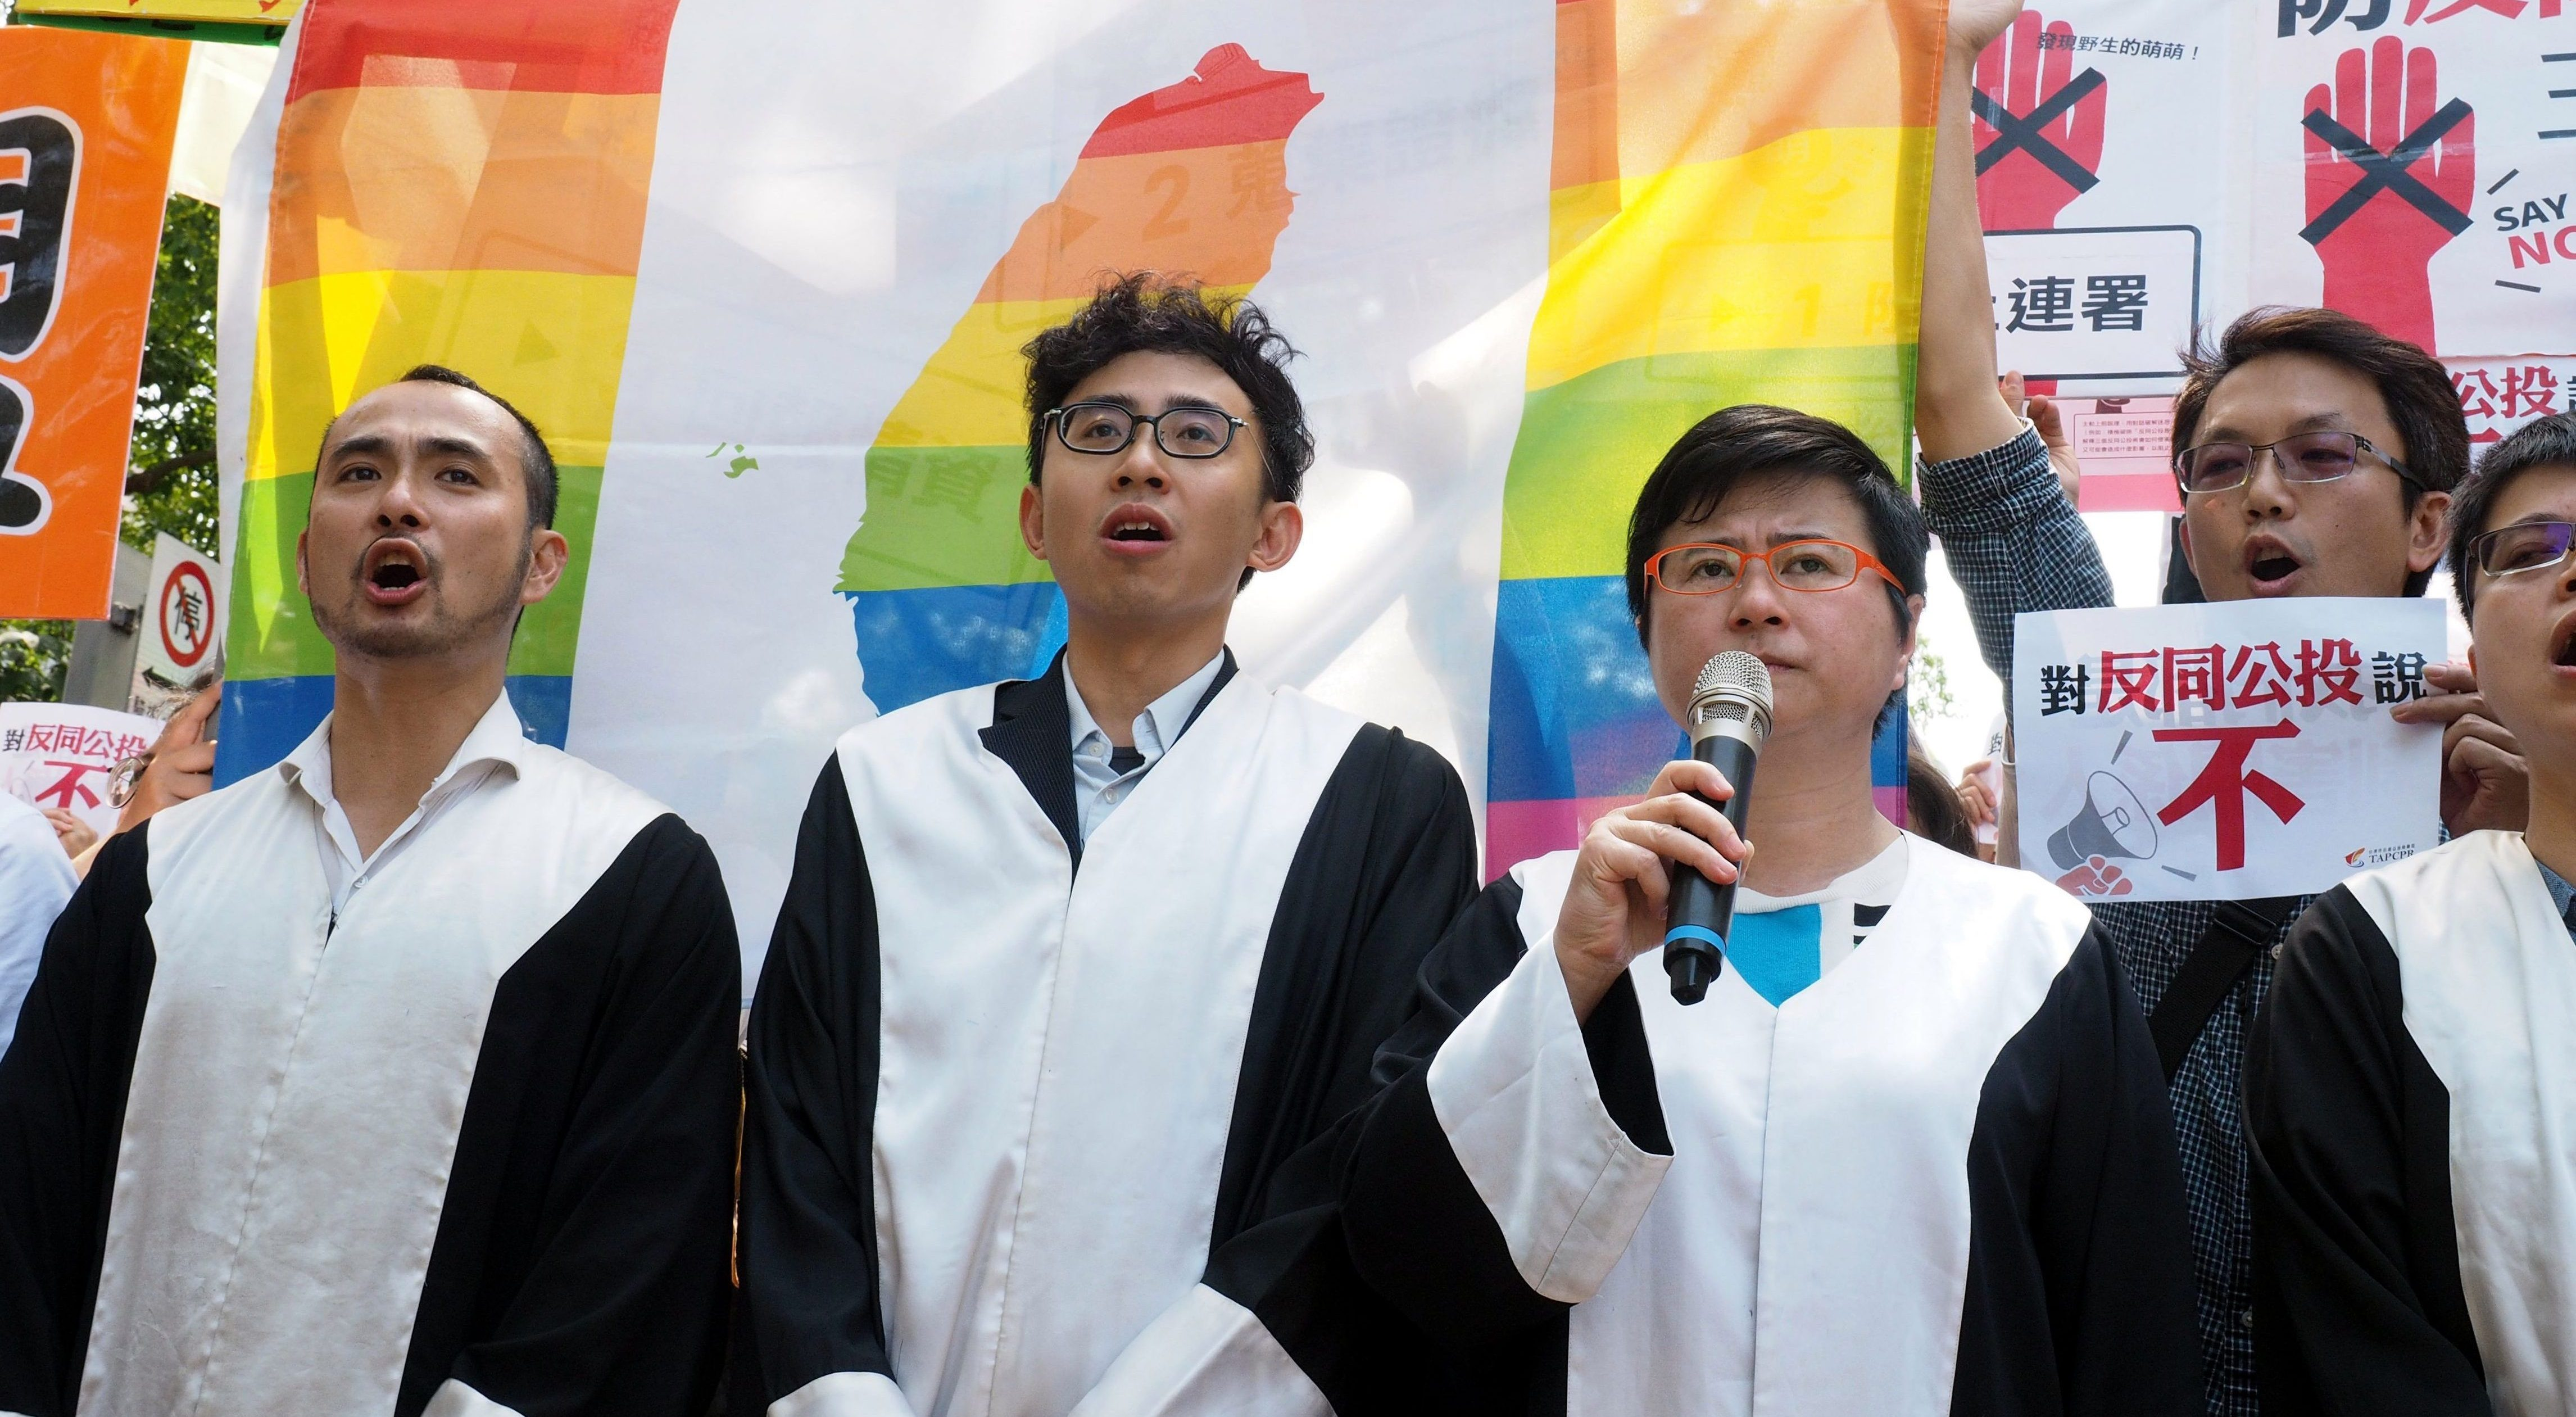 Taiwan gay rights groups protest referendums aimed at same-sex marriage.